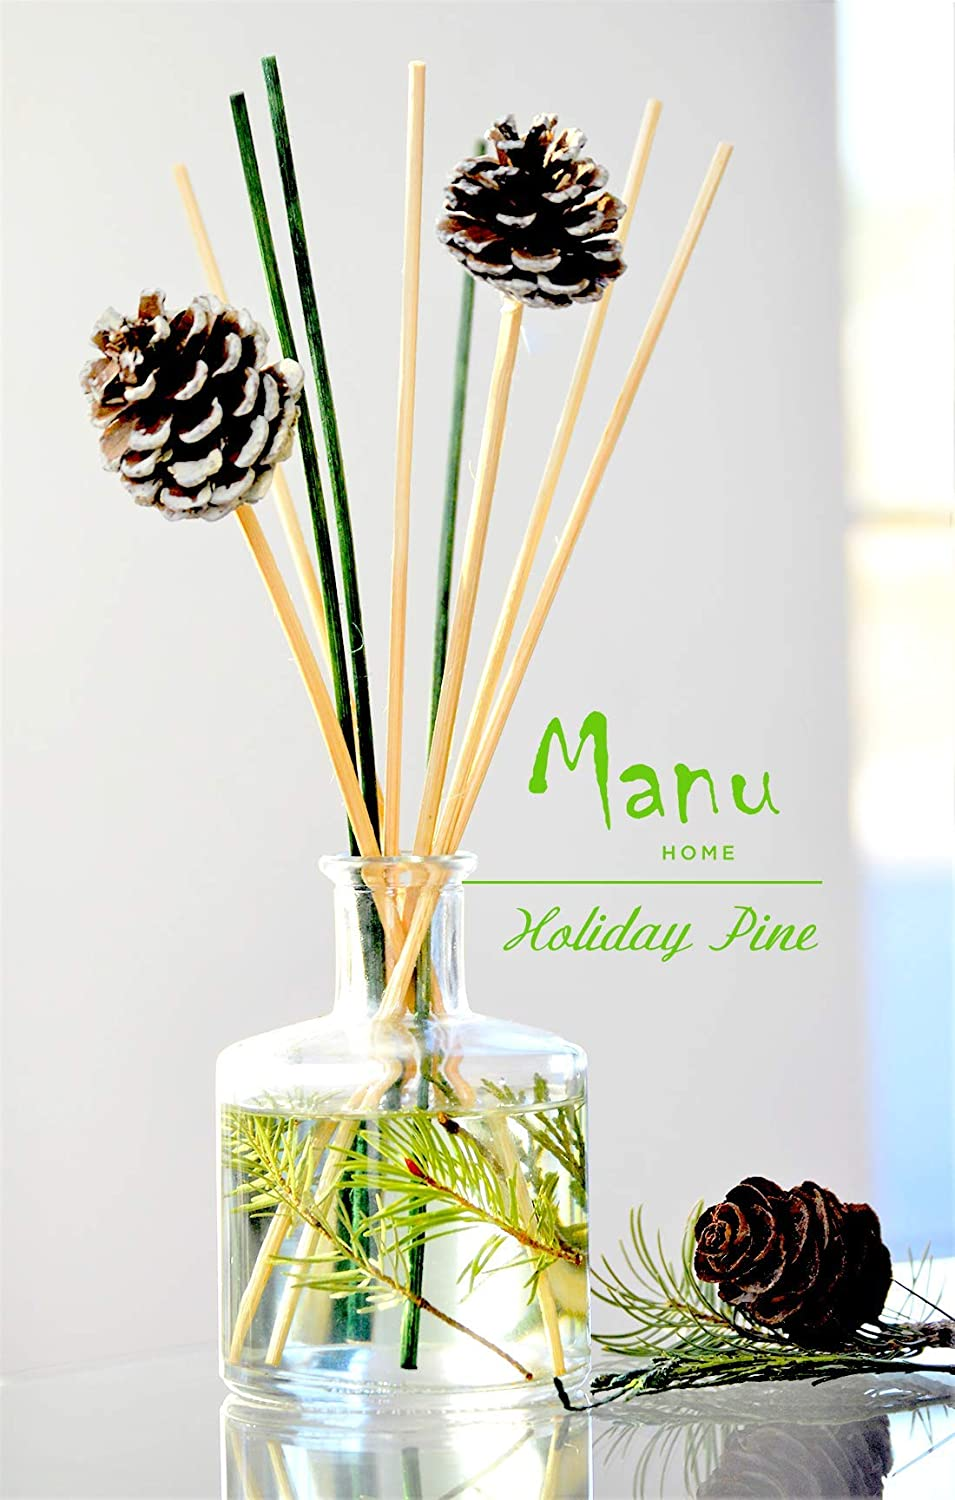 Manu Home Fresh Forest Pine Diffuser ~ The Scent of Pine with Cedar Wood, Patchouli and Thyme. Our Natural Reeds Produce a Light, Delicate Fragrance Drawn from Pure Essential Oils of botanicals~